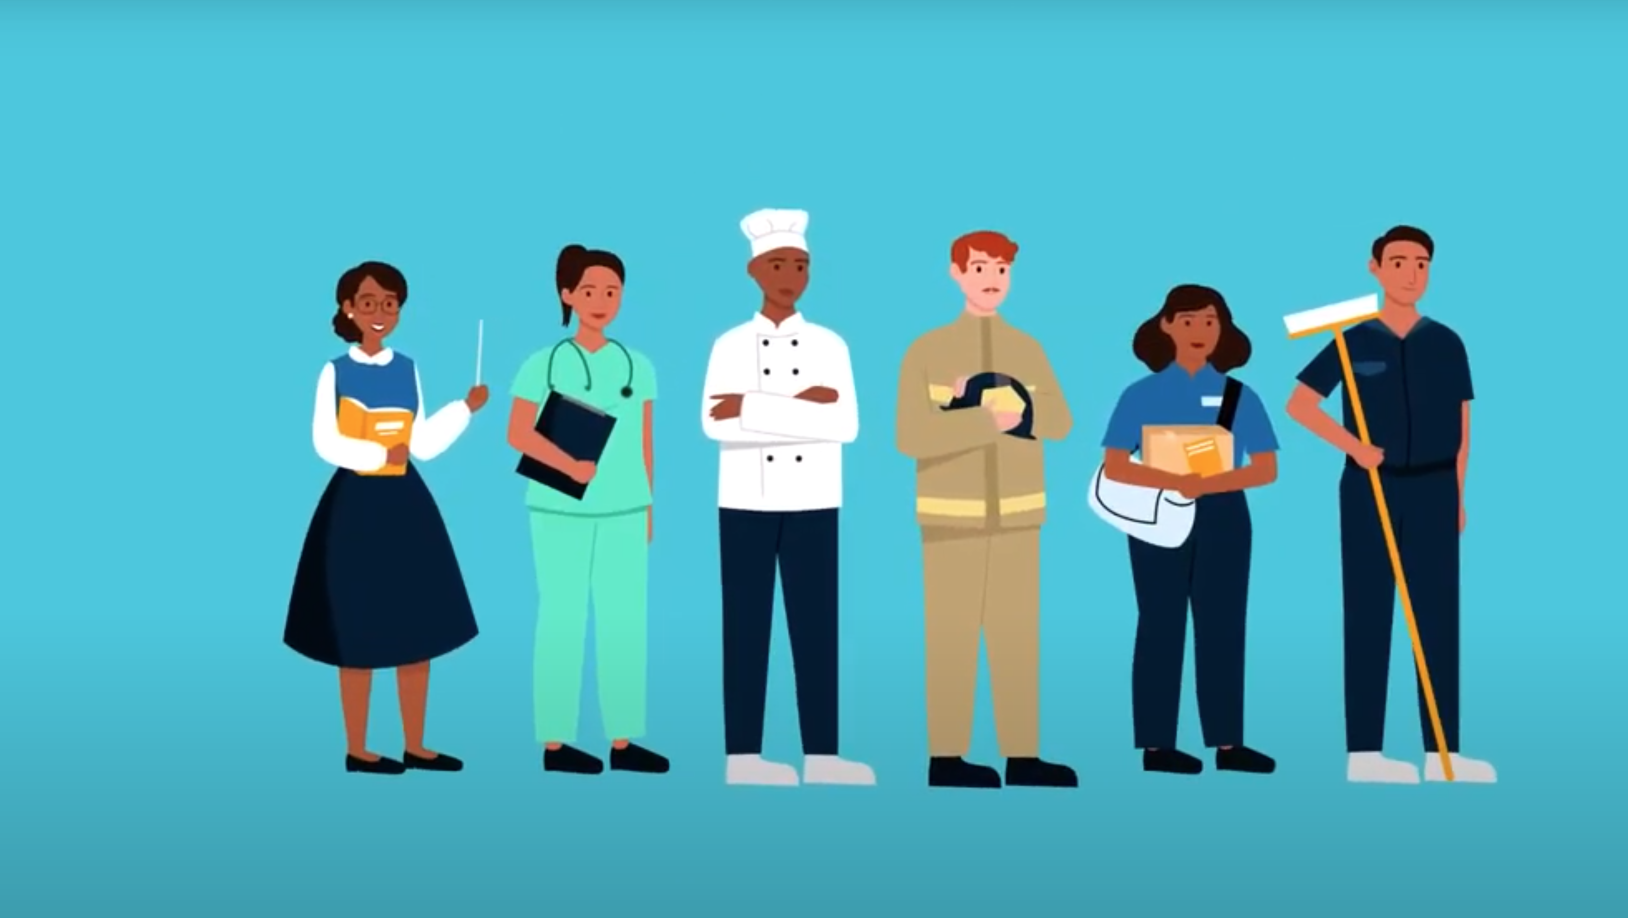 Amazon Housing Equity Fund video thumbnail showing an illustration of people dressed for different career.